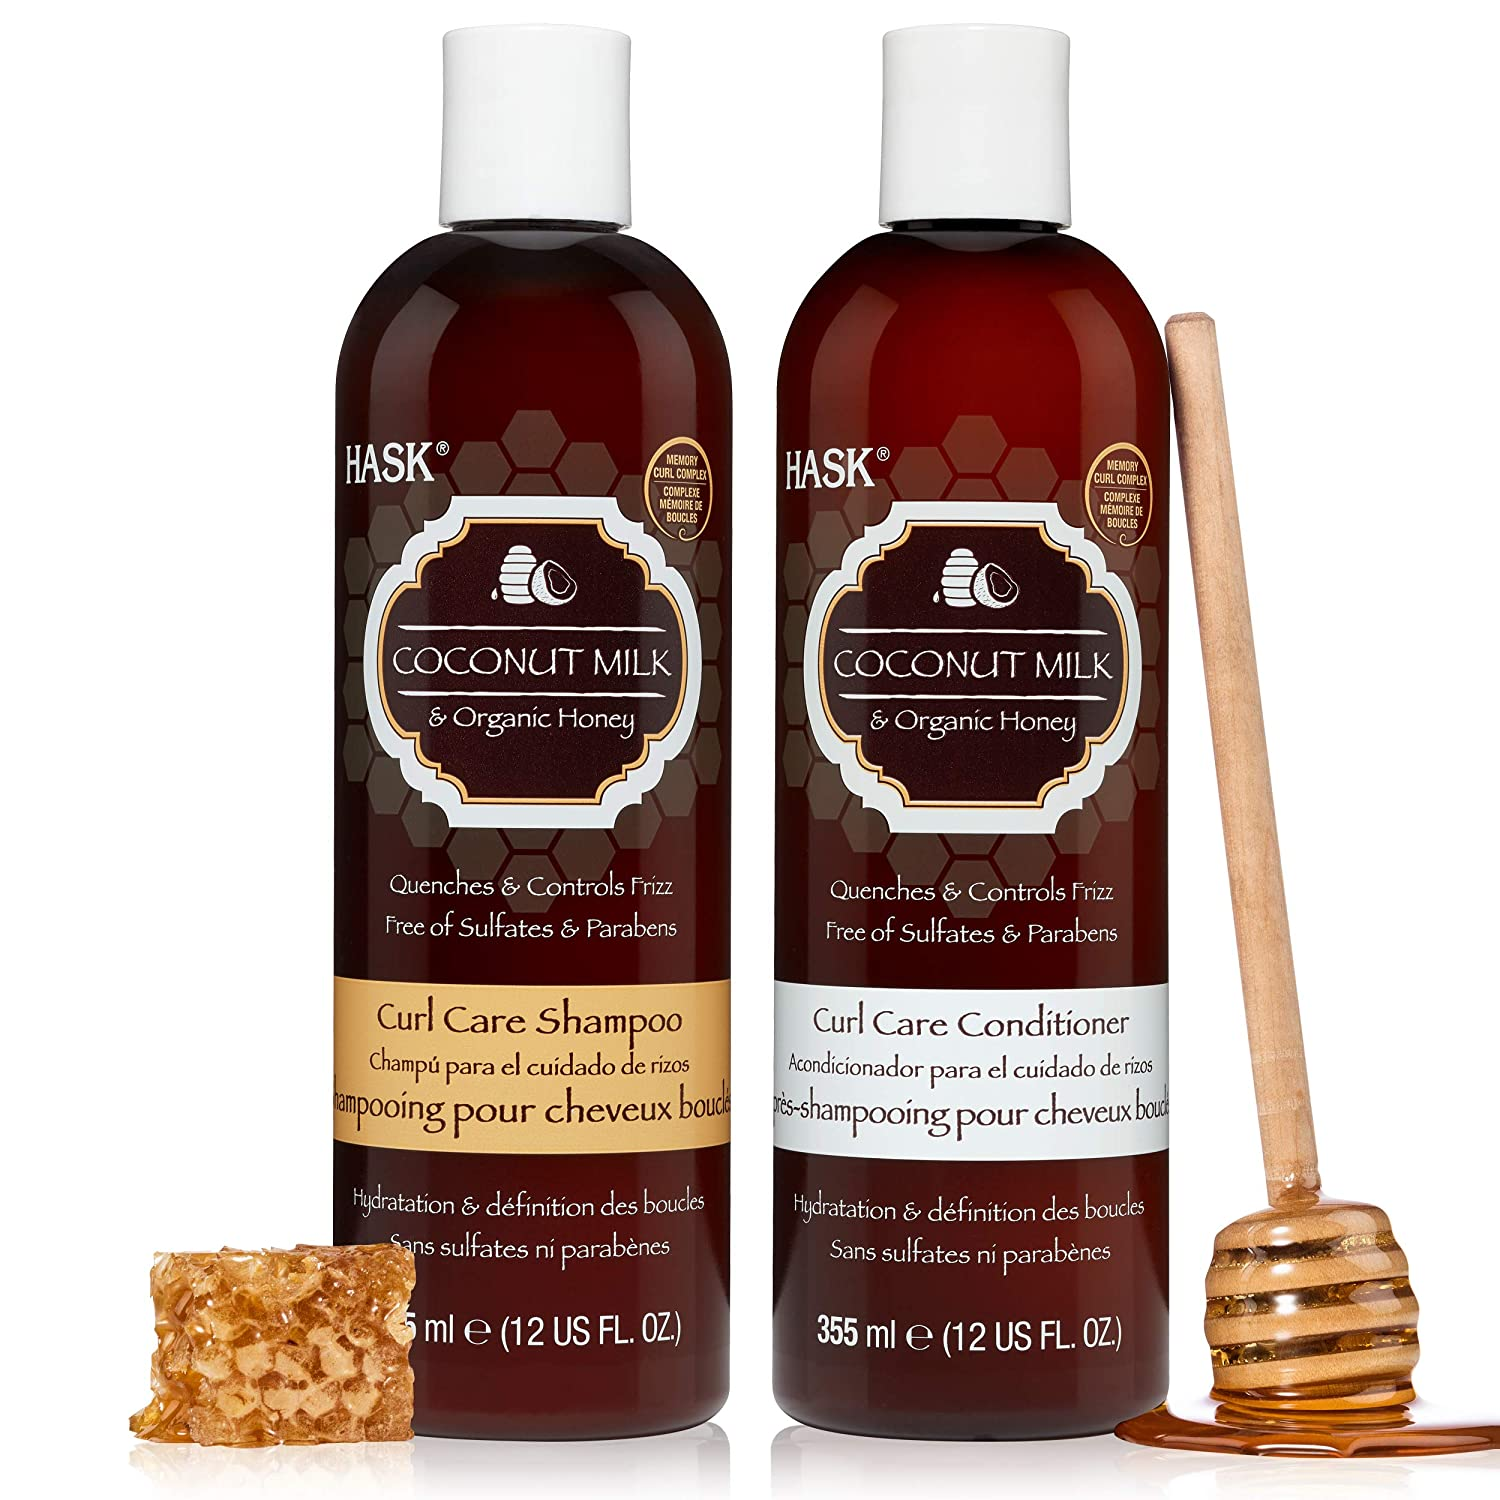 HASK COCONUT MILK + HONEY Curly Hair Shampoo and Conditioner Set Curl Care for all curly hair types, color safe, gluten-free, sulfate-free, paraben-free - 1 Shampoo and 1 Conditioner